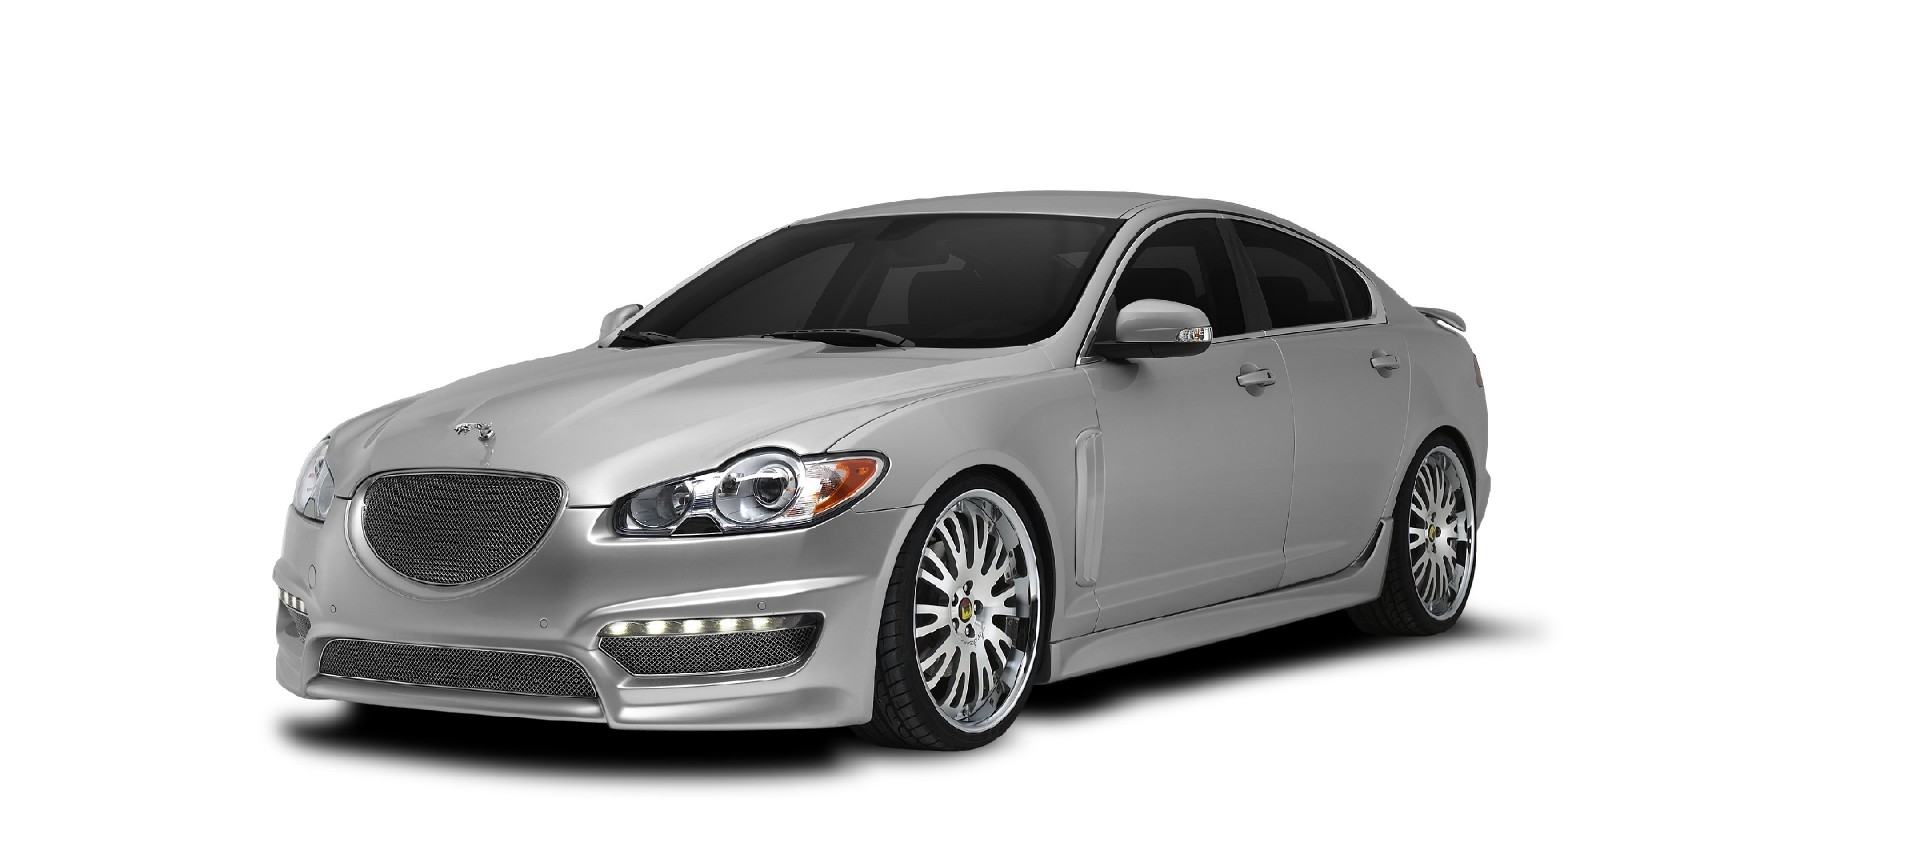 Jaguar Xf 2008 Tuning